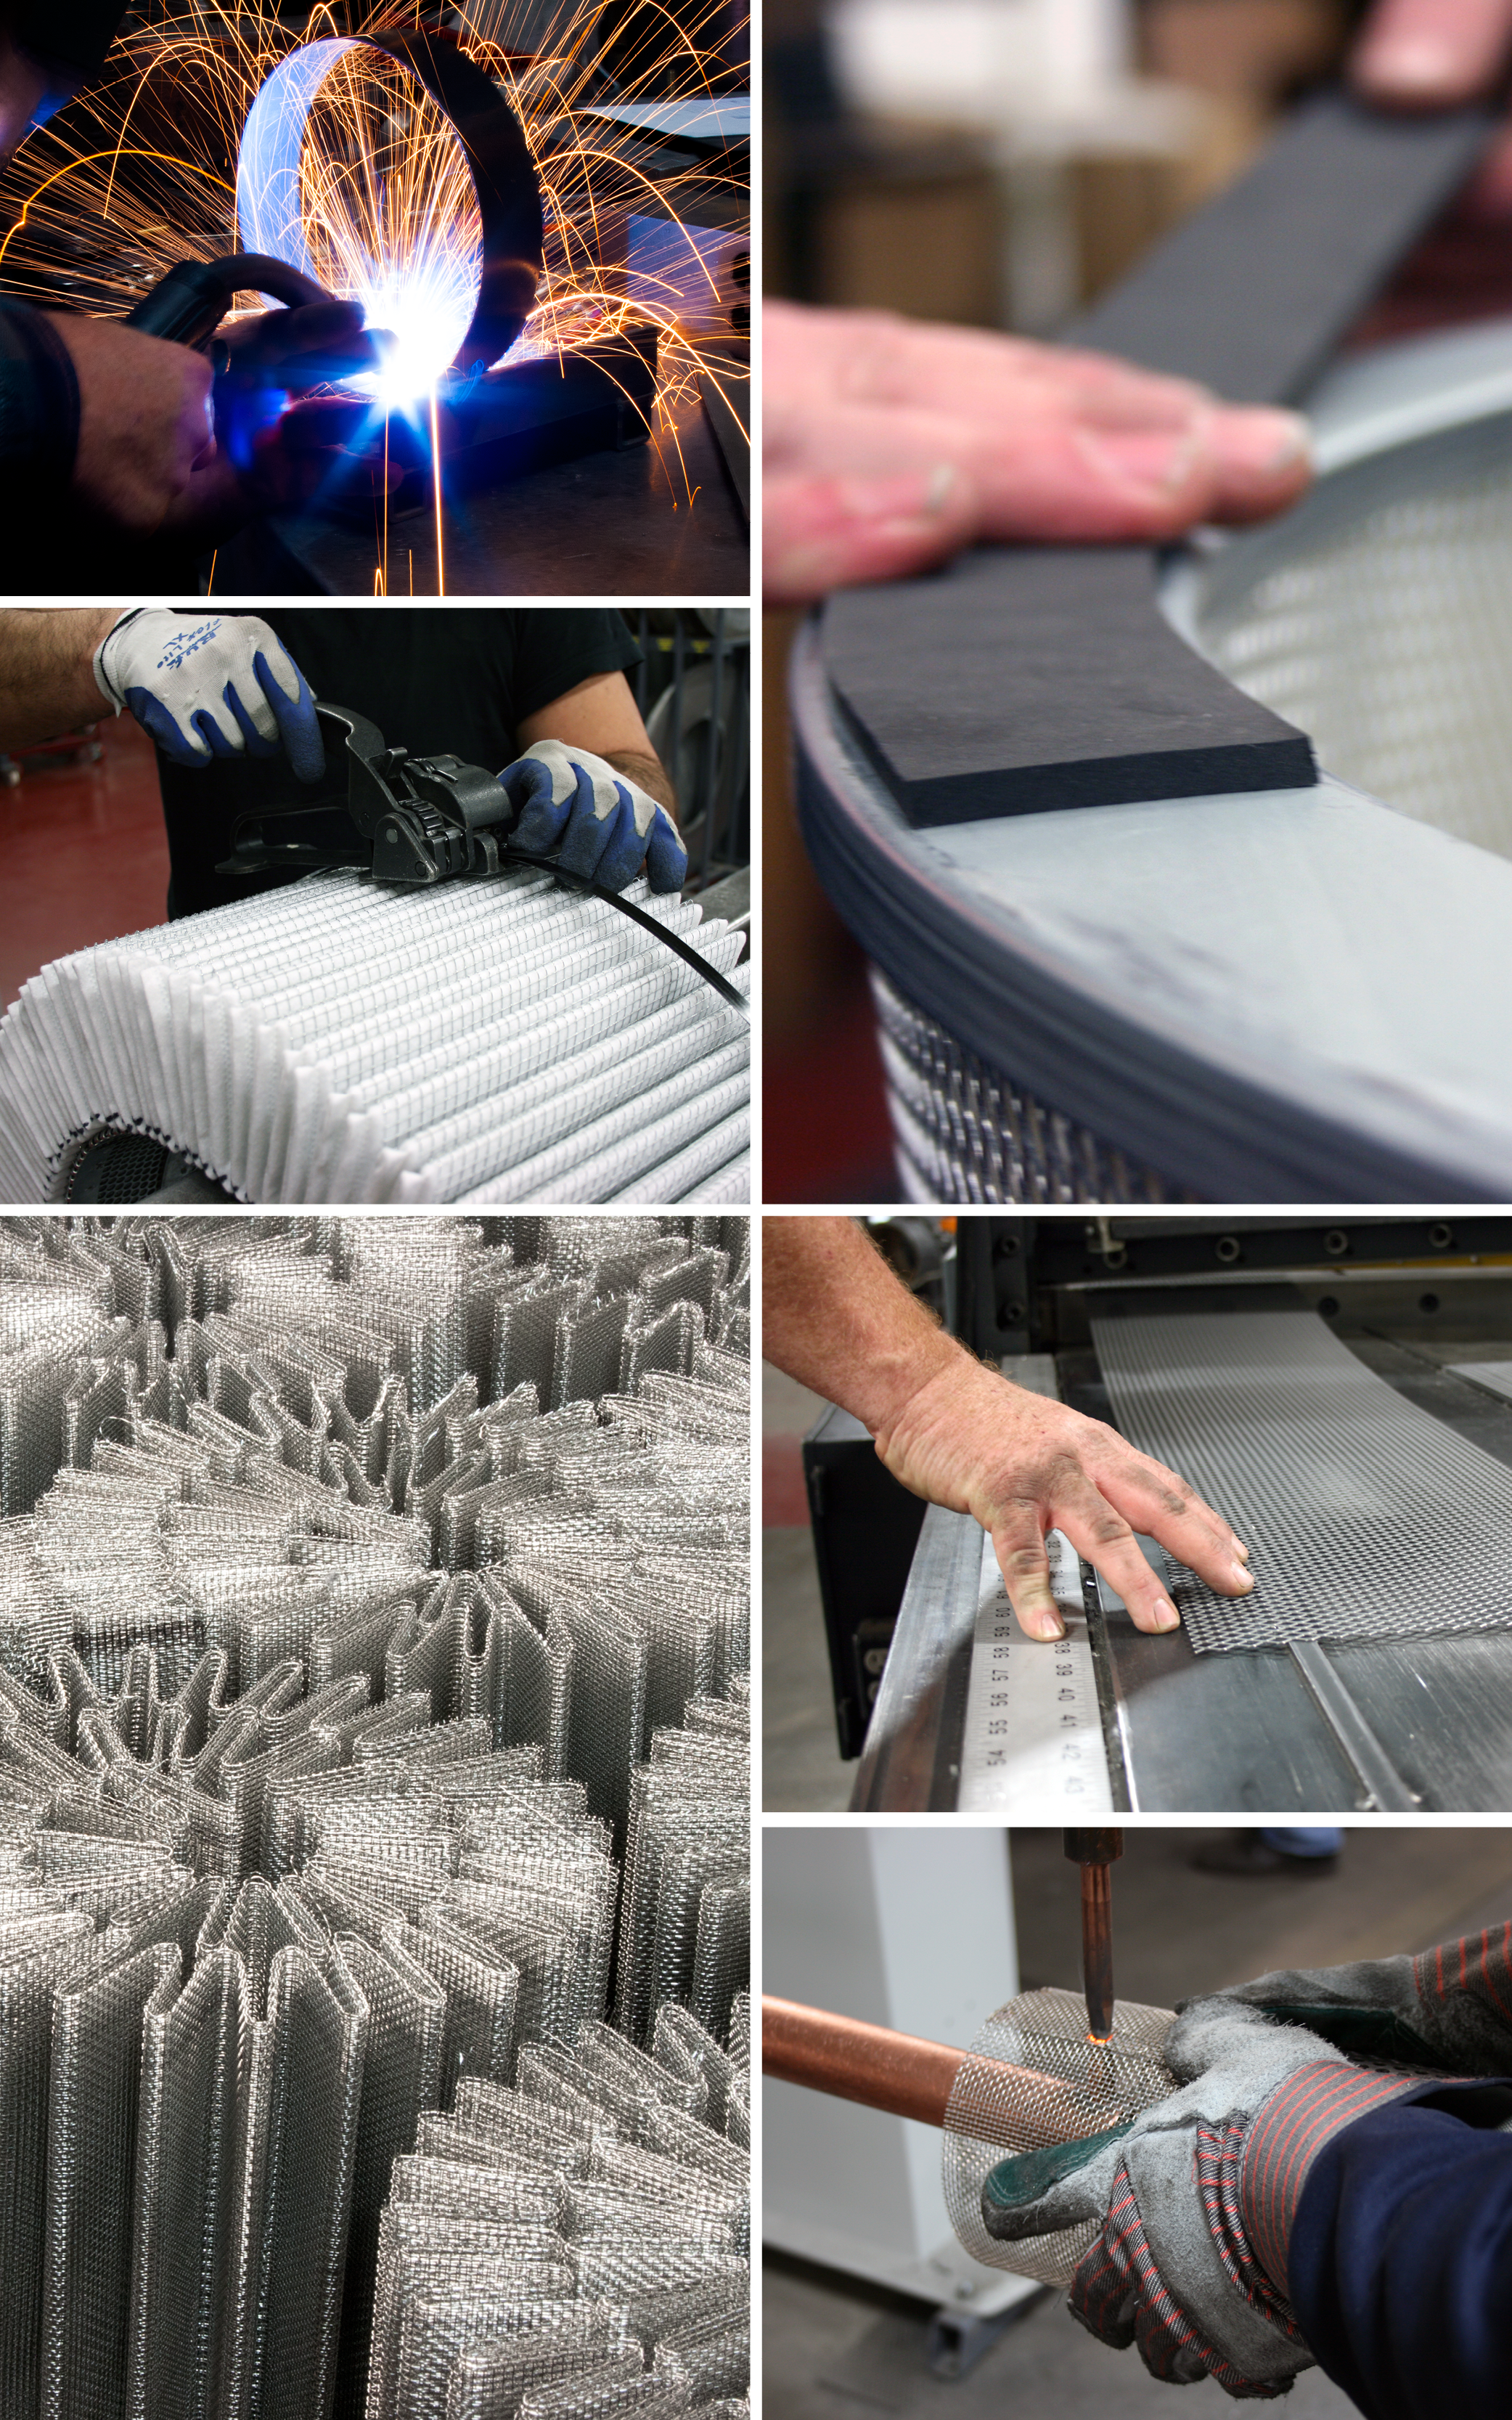 Industrial filter manufacturing processes and product assembly photos at Sidco Filter Corporation.